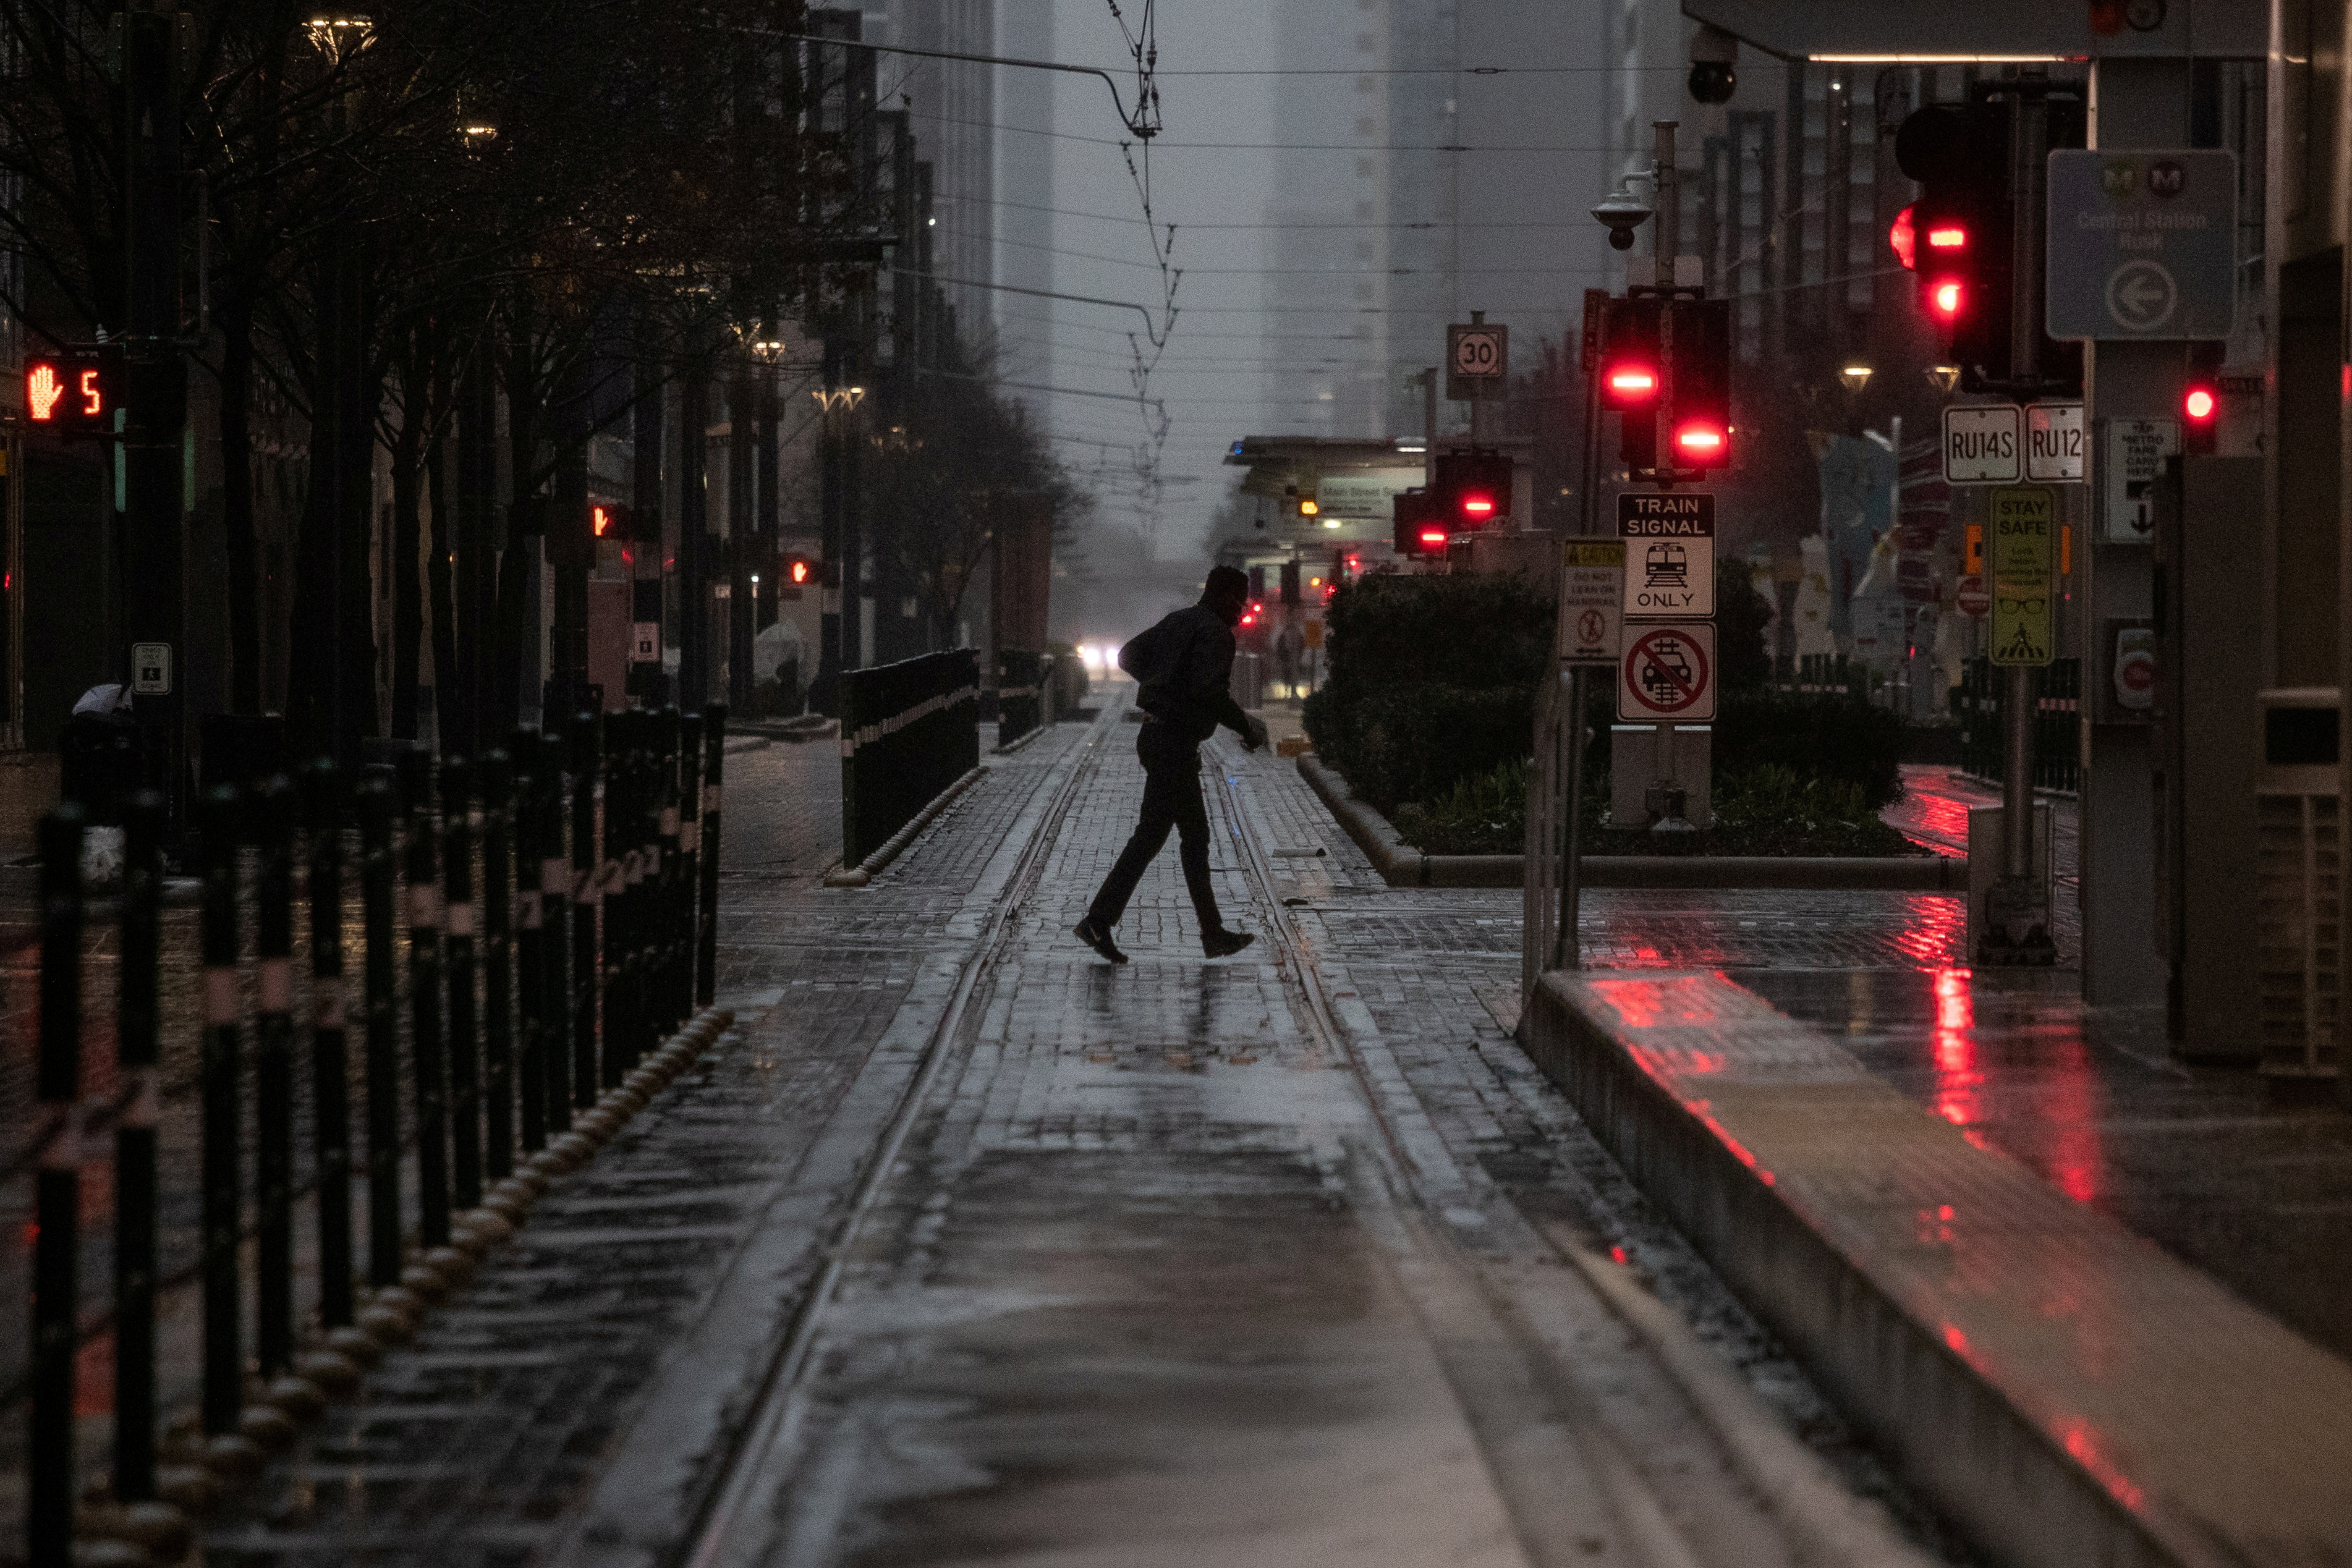 A man crosses Main Street in downtown during record-breaking temperatures in Houston, U.S., February 17, 2021. REUTERS/Adrees Latif/File Photo